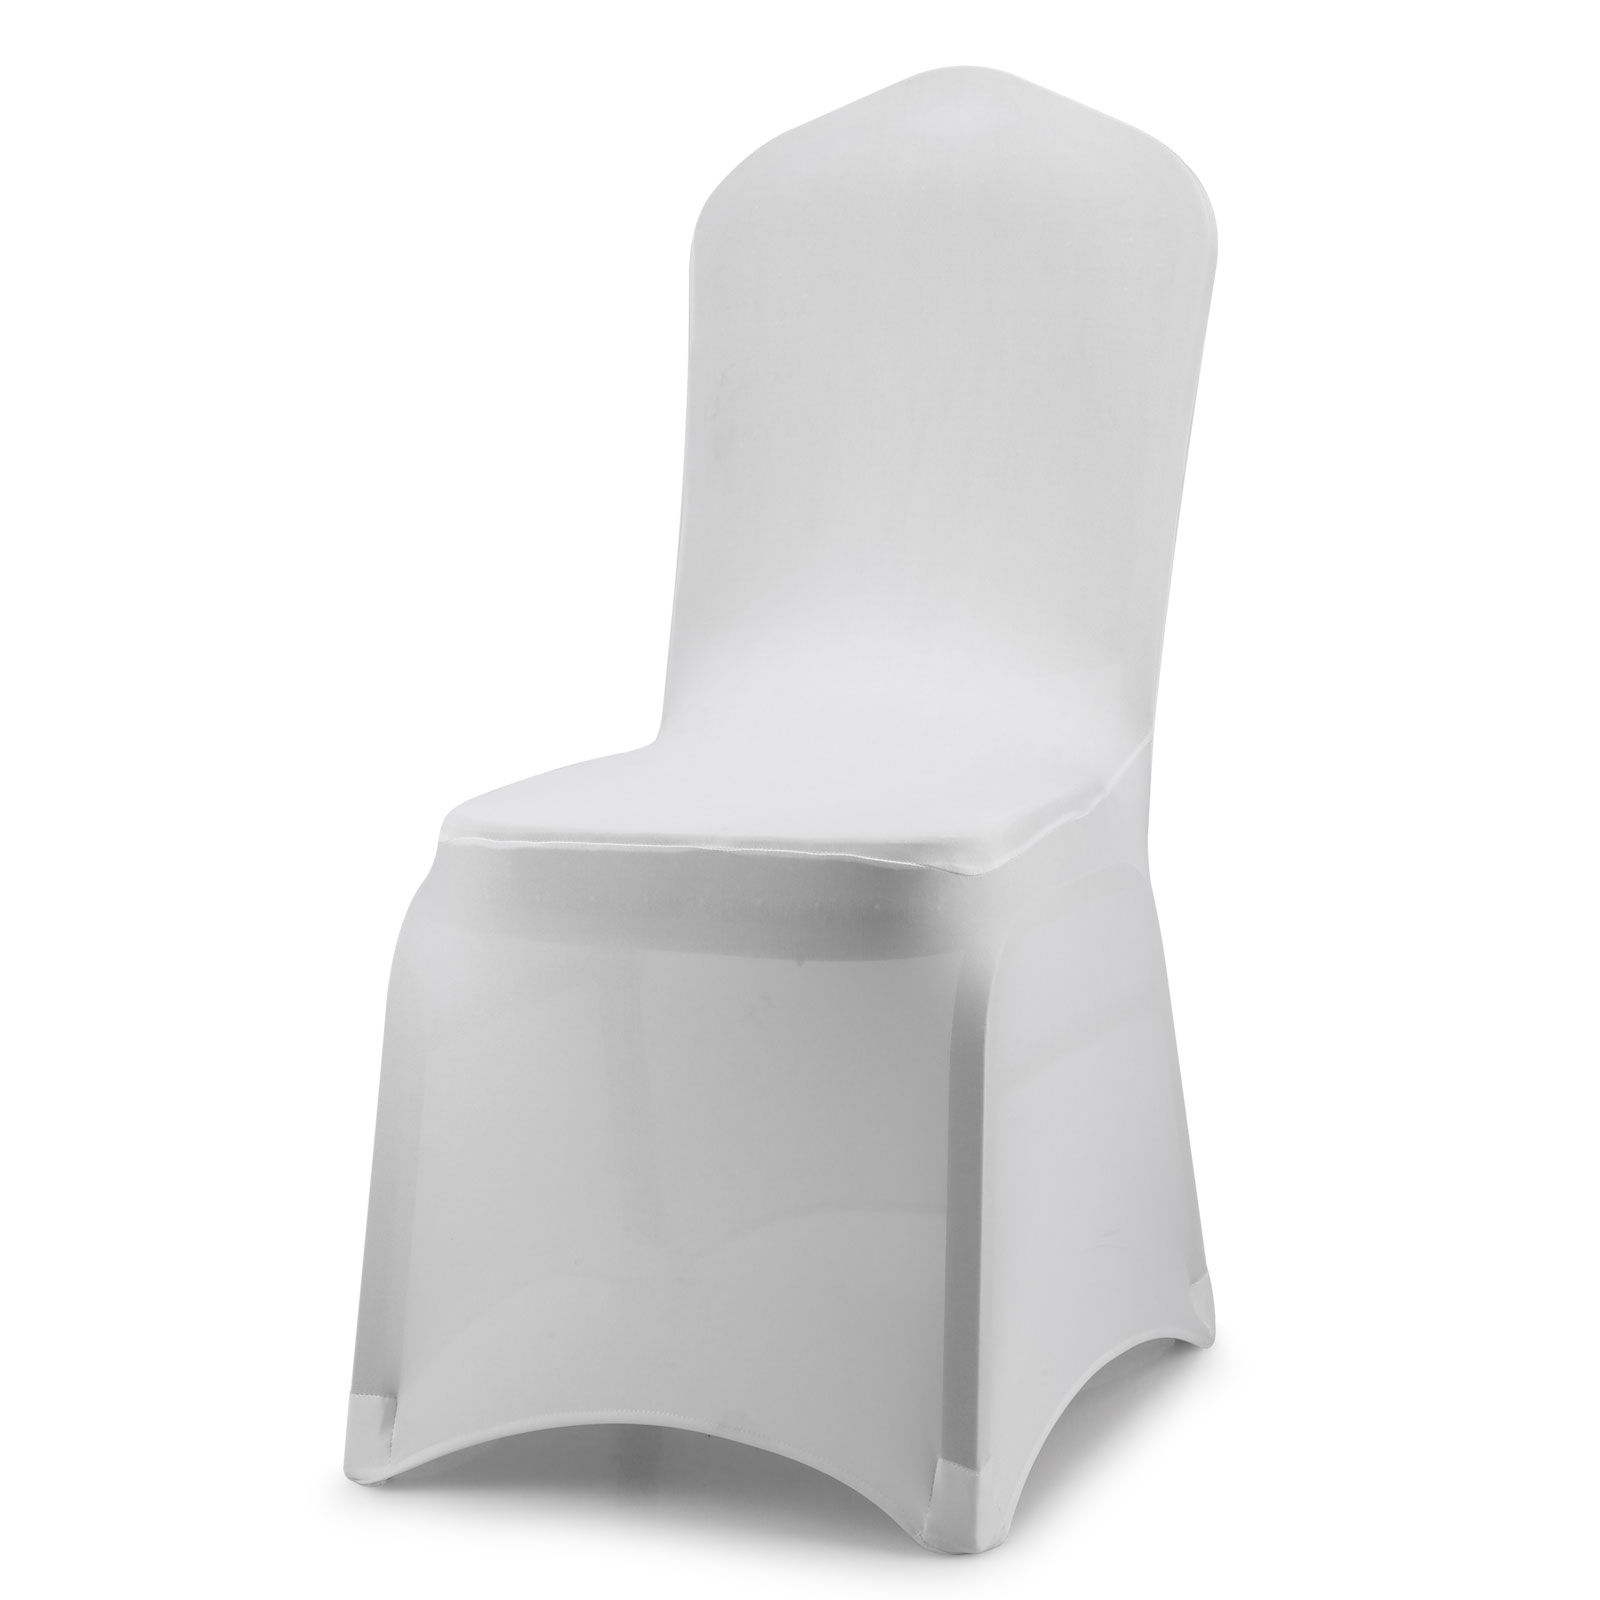 stretch chair covers oversized swivel chairs universal white polyester spandex folding